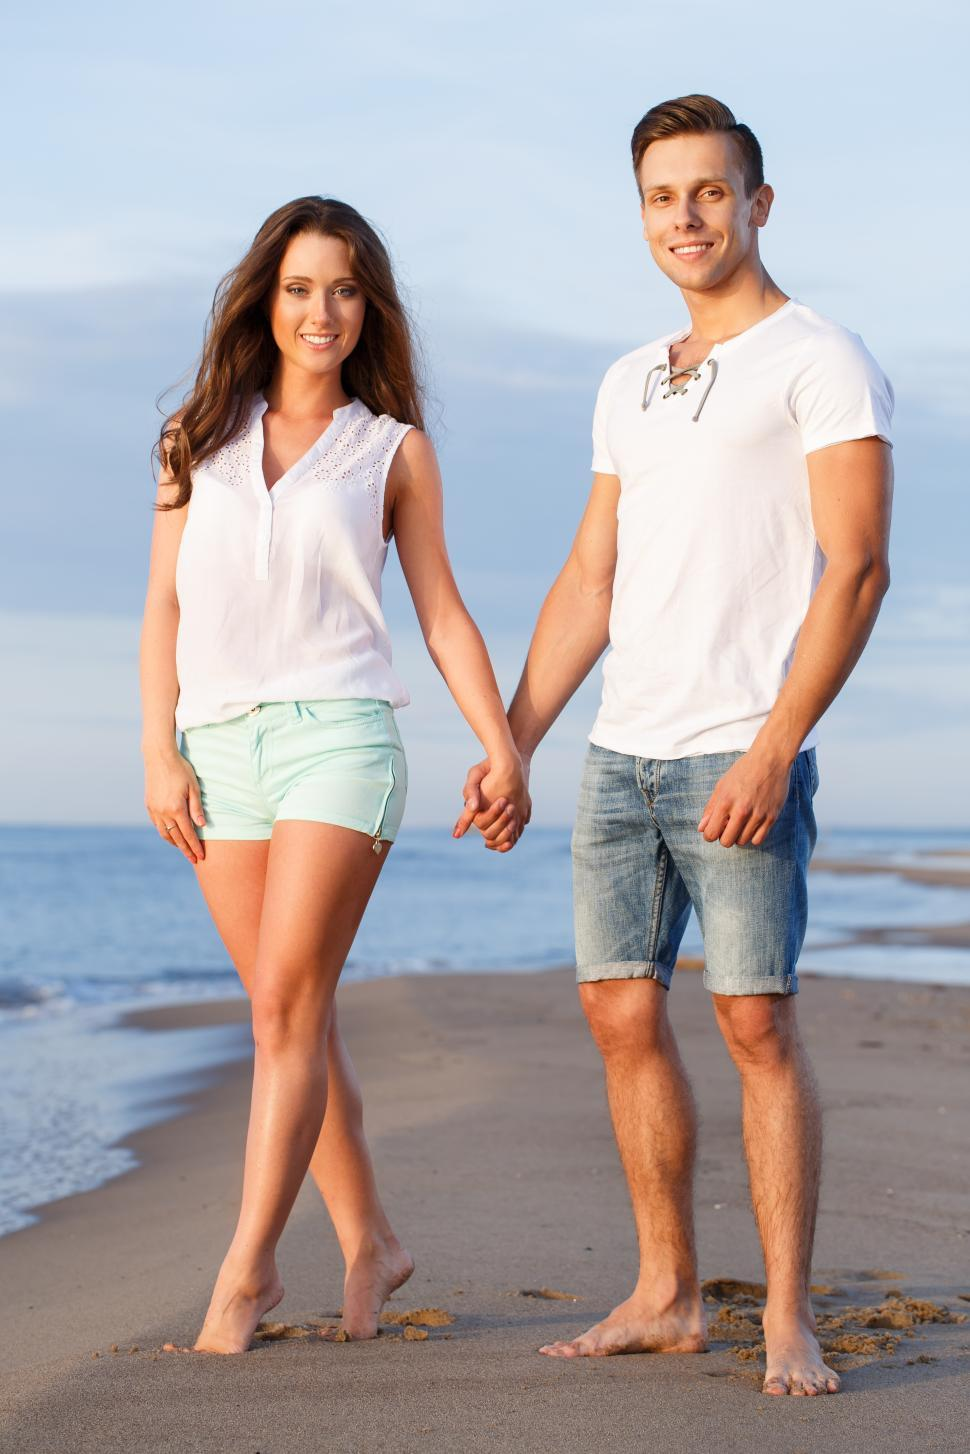 Download Free Stock Photo of Beautiful couple holding hands on the beach